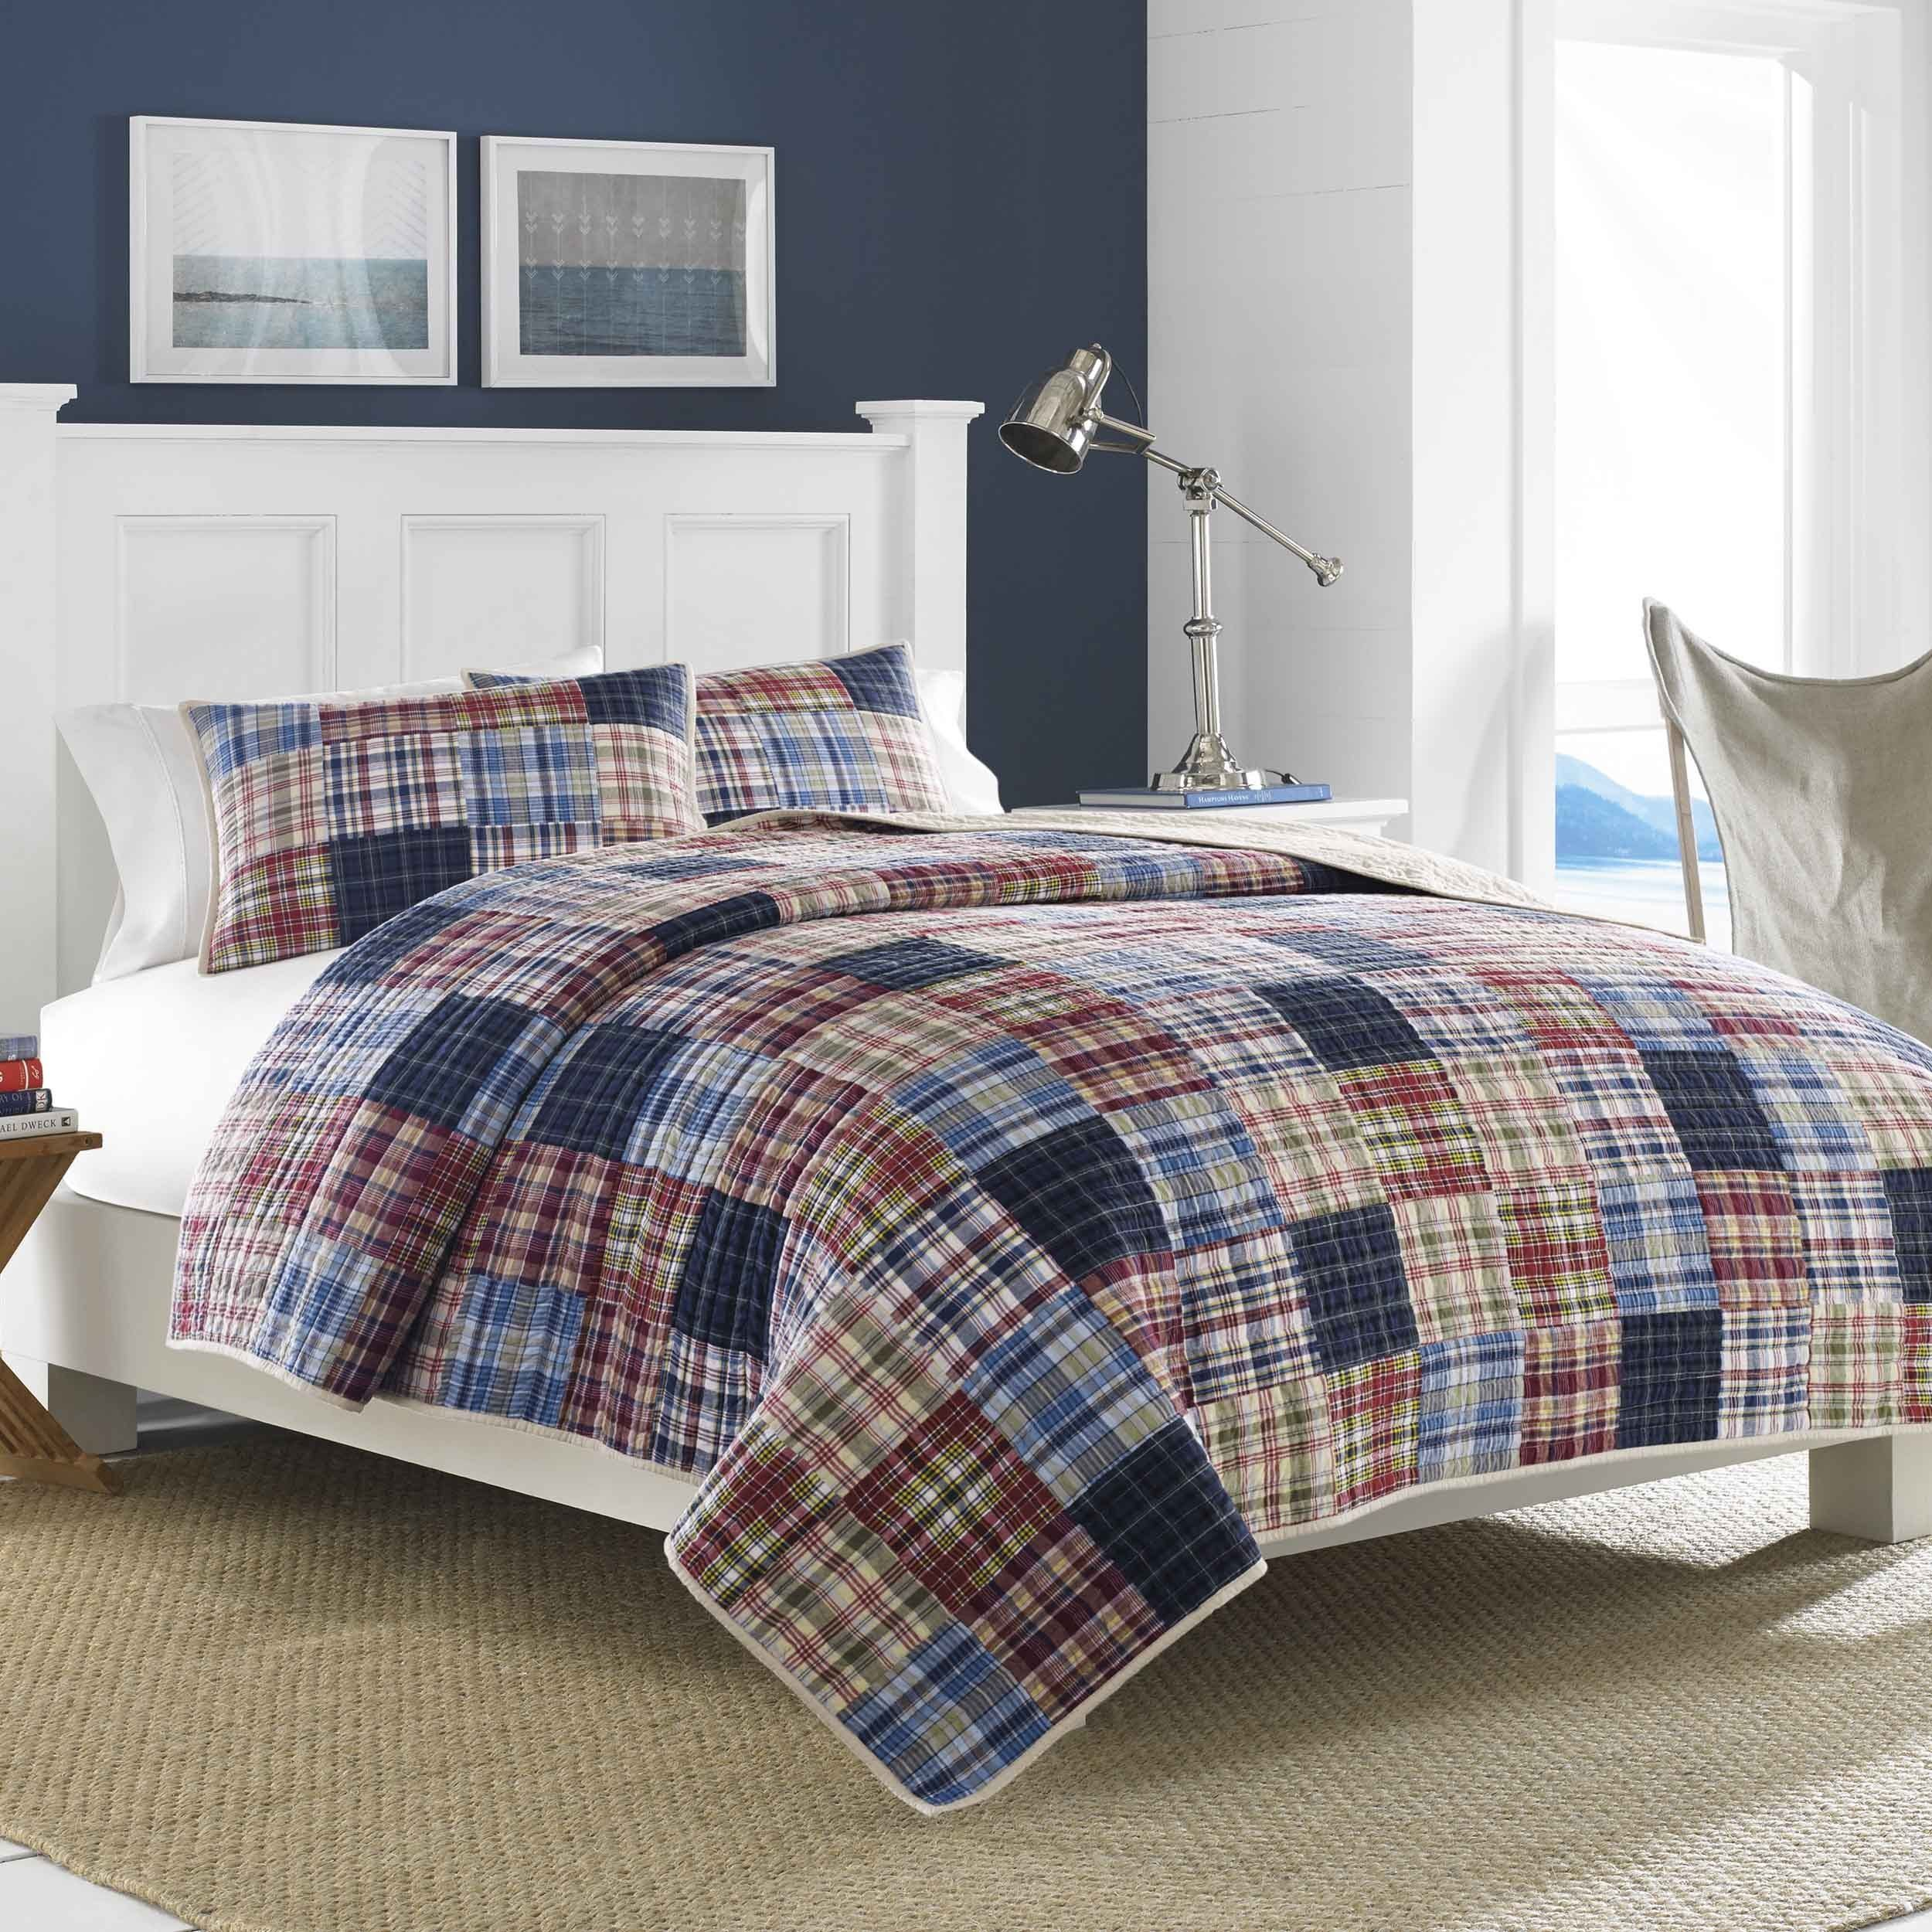 This beautiful quilt is designed after a patchwork style, in hues ... : patchwork quilt twin - Adamdwight.com